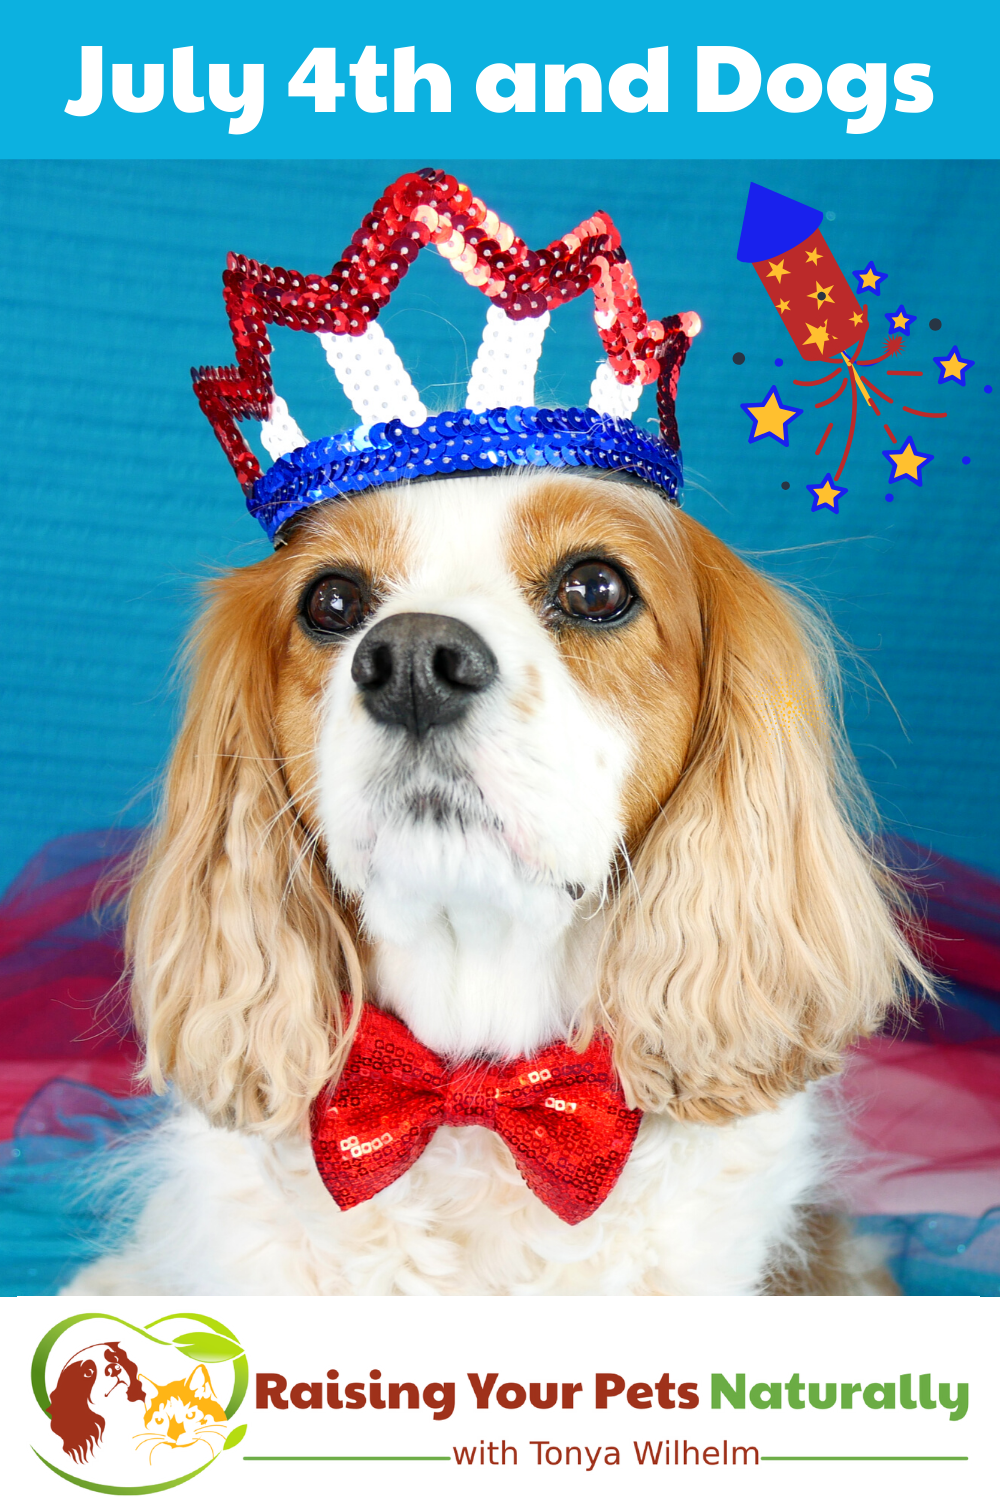 4th of July With Dogs Tips | Dogs Afraid of 4th of July Fireworks (Early access for our Patreon community)